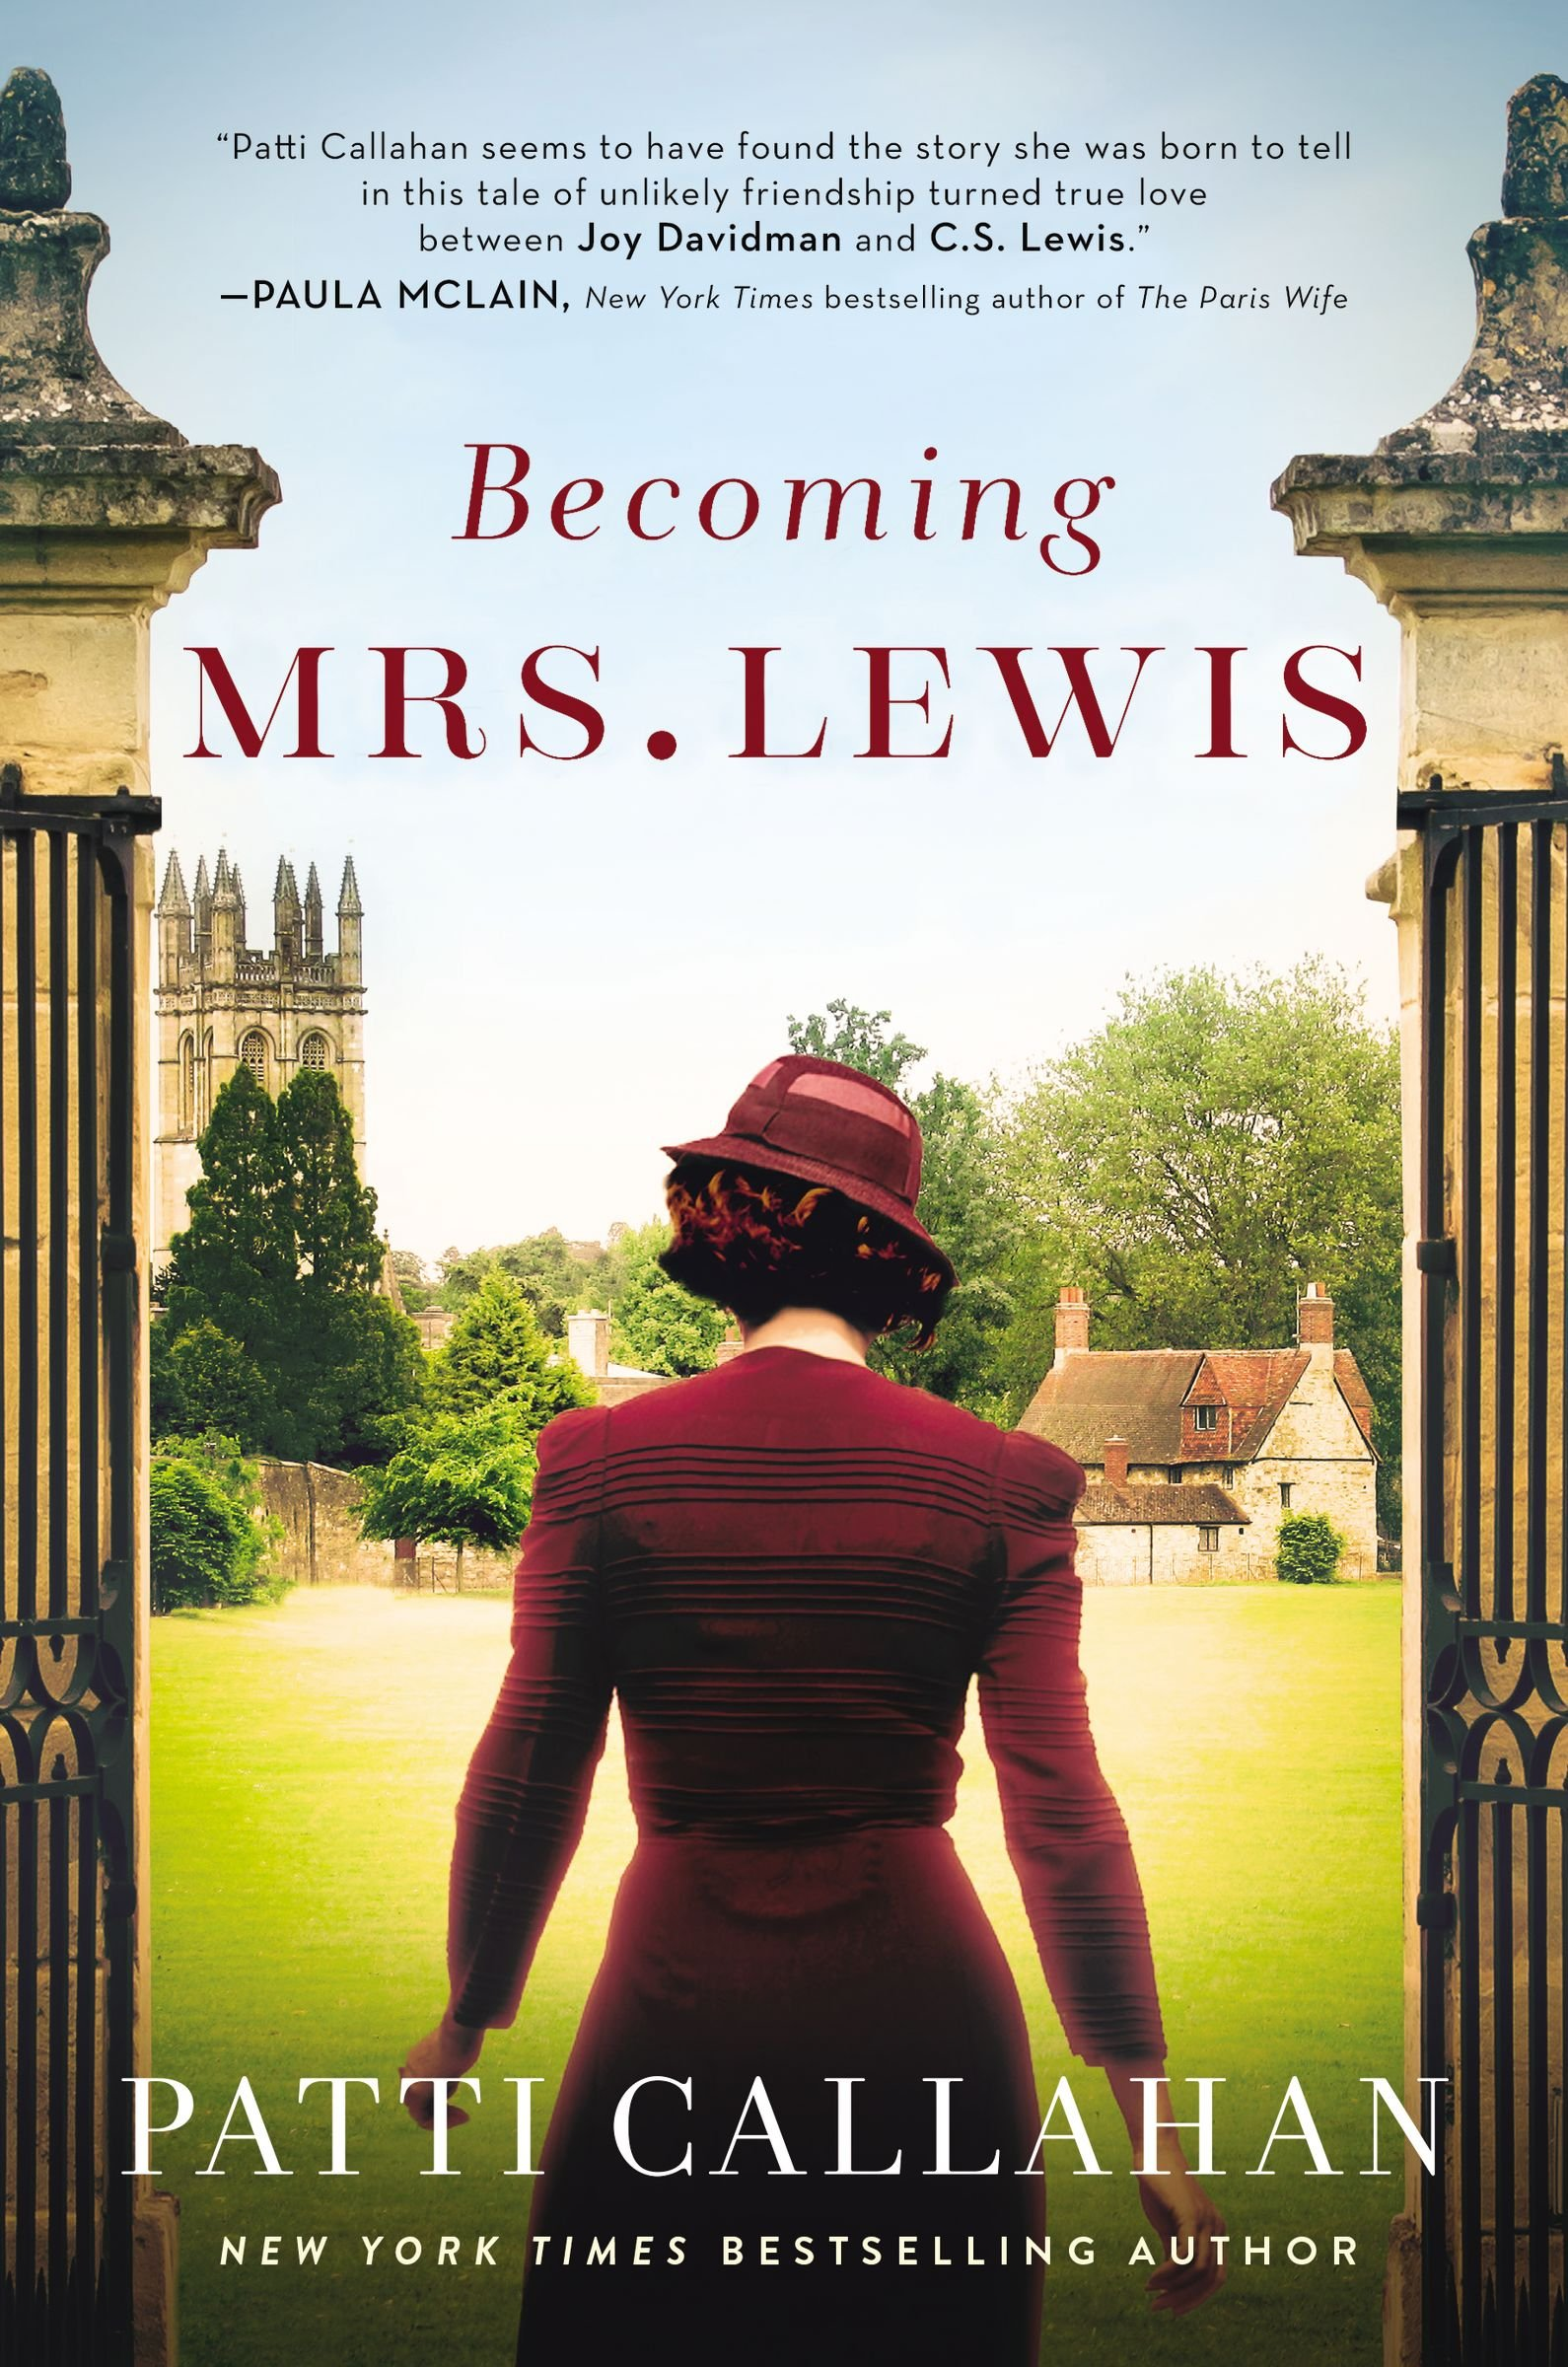 Becoming Mrs. Lewis: The Improbable Love Story of Joy Davidman and C. S. Lewis by HarperCollins Christian Pub.